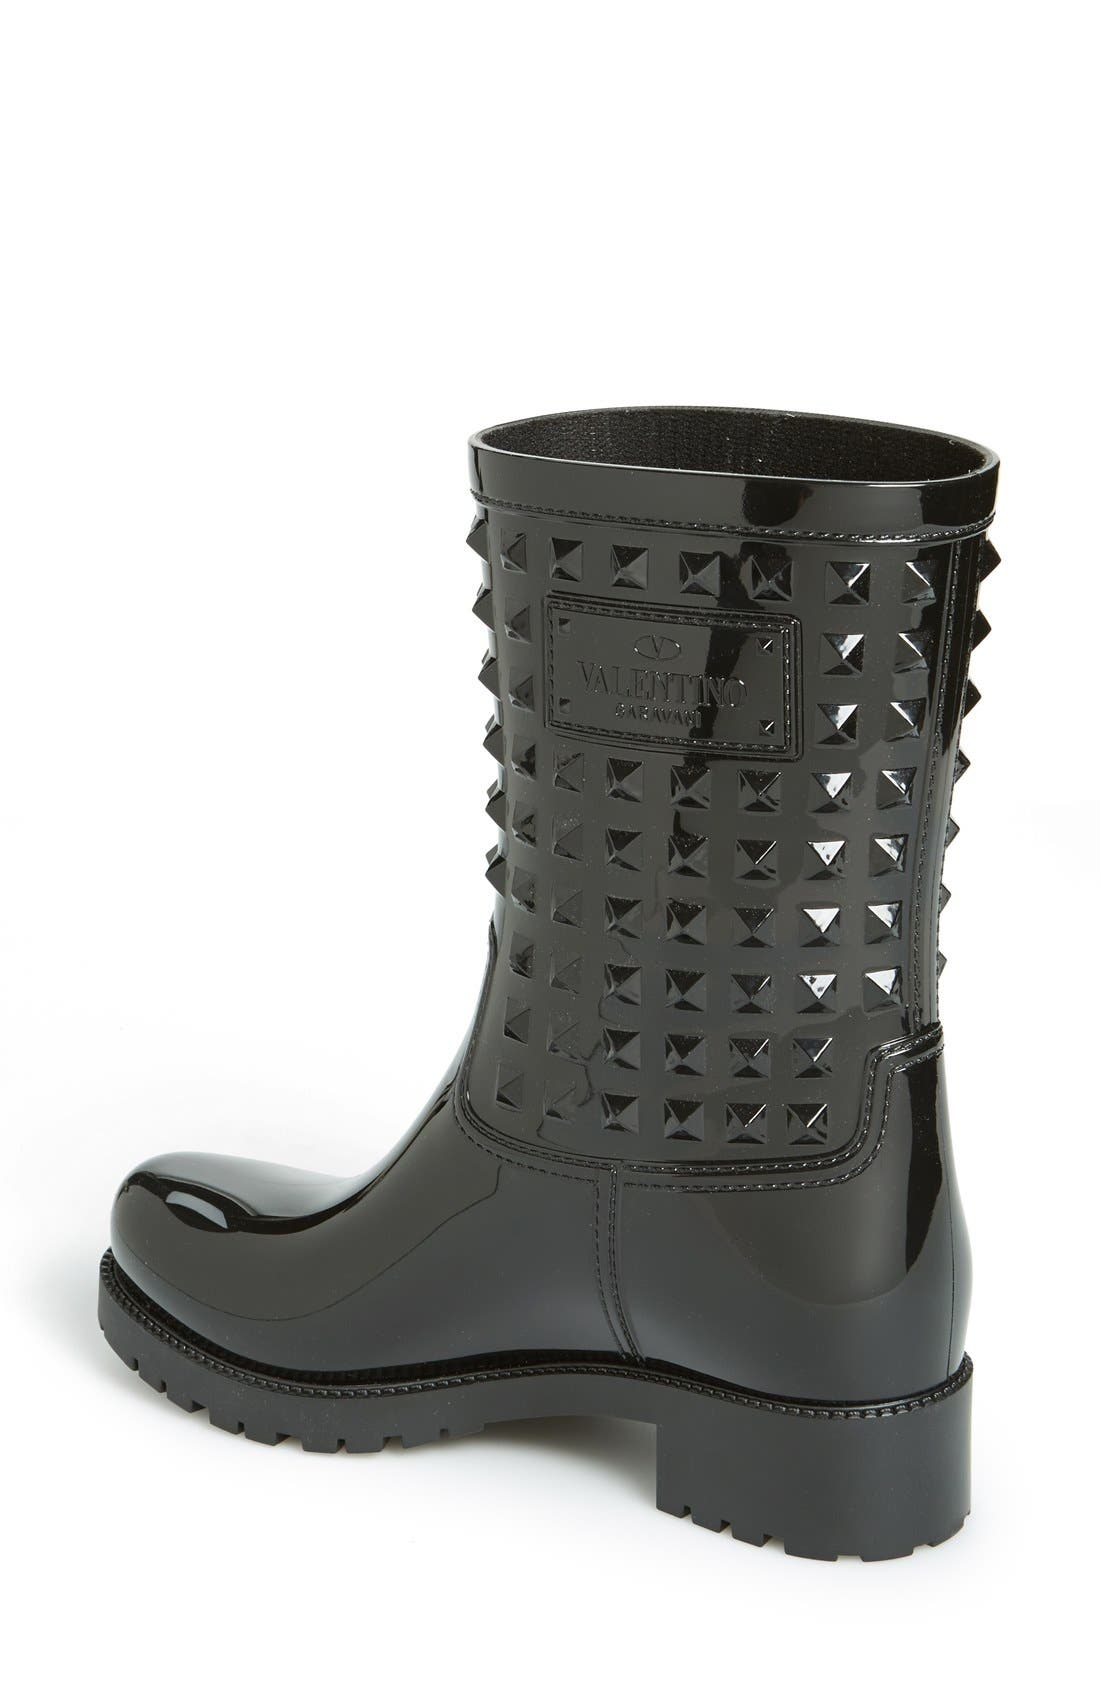 Alternate Image 3  - VALENTINO GARAVANI 'Rockstud' Rain Boot (Women)